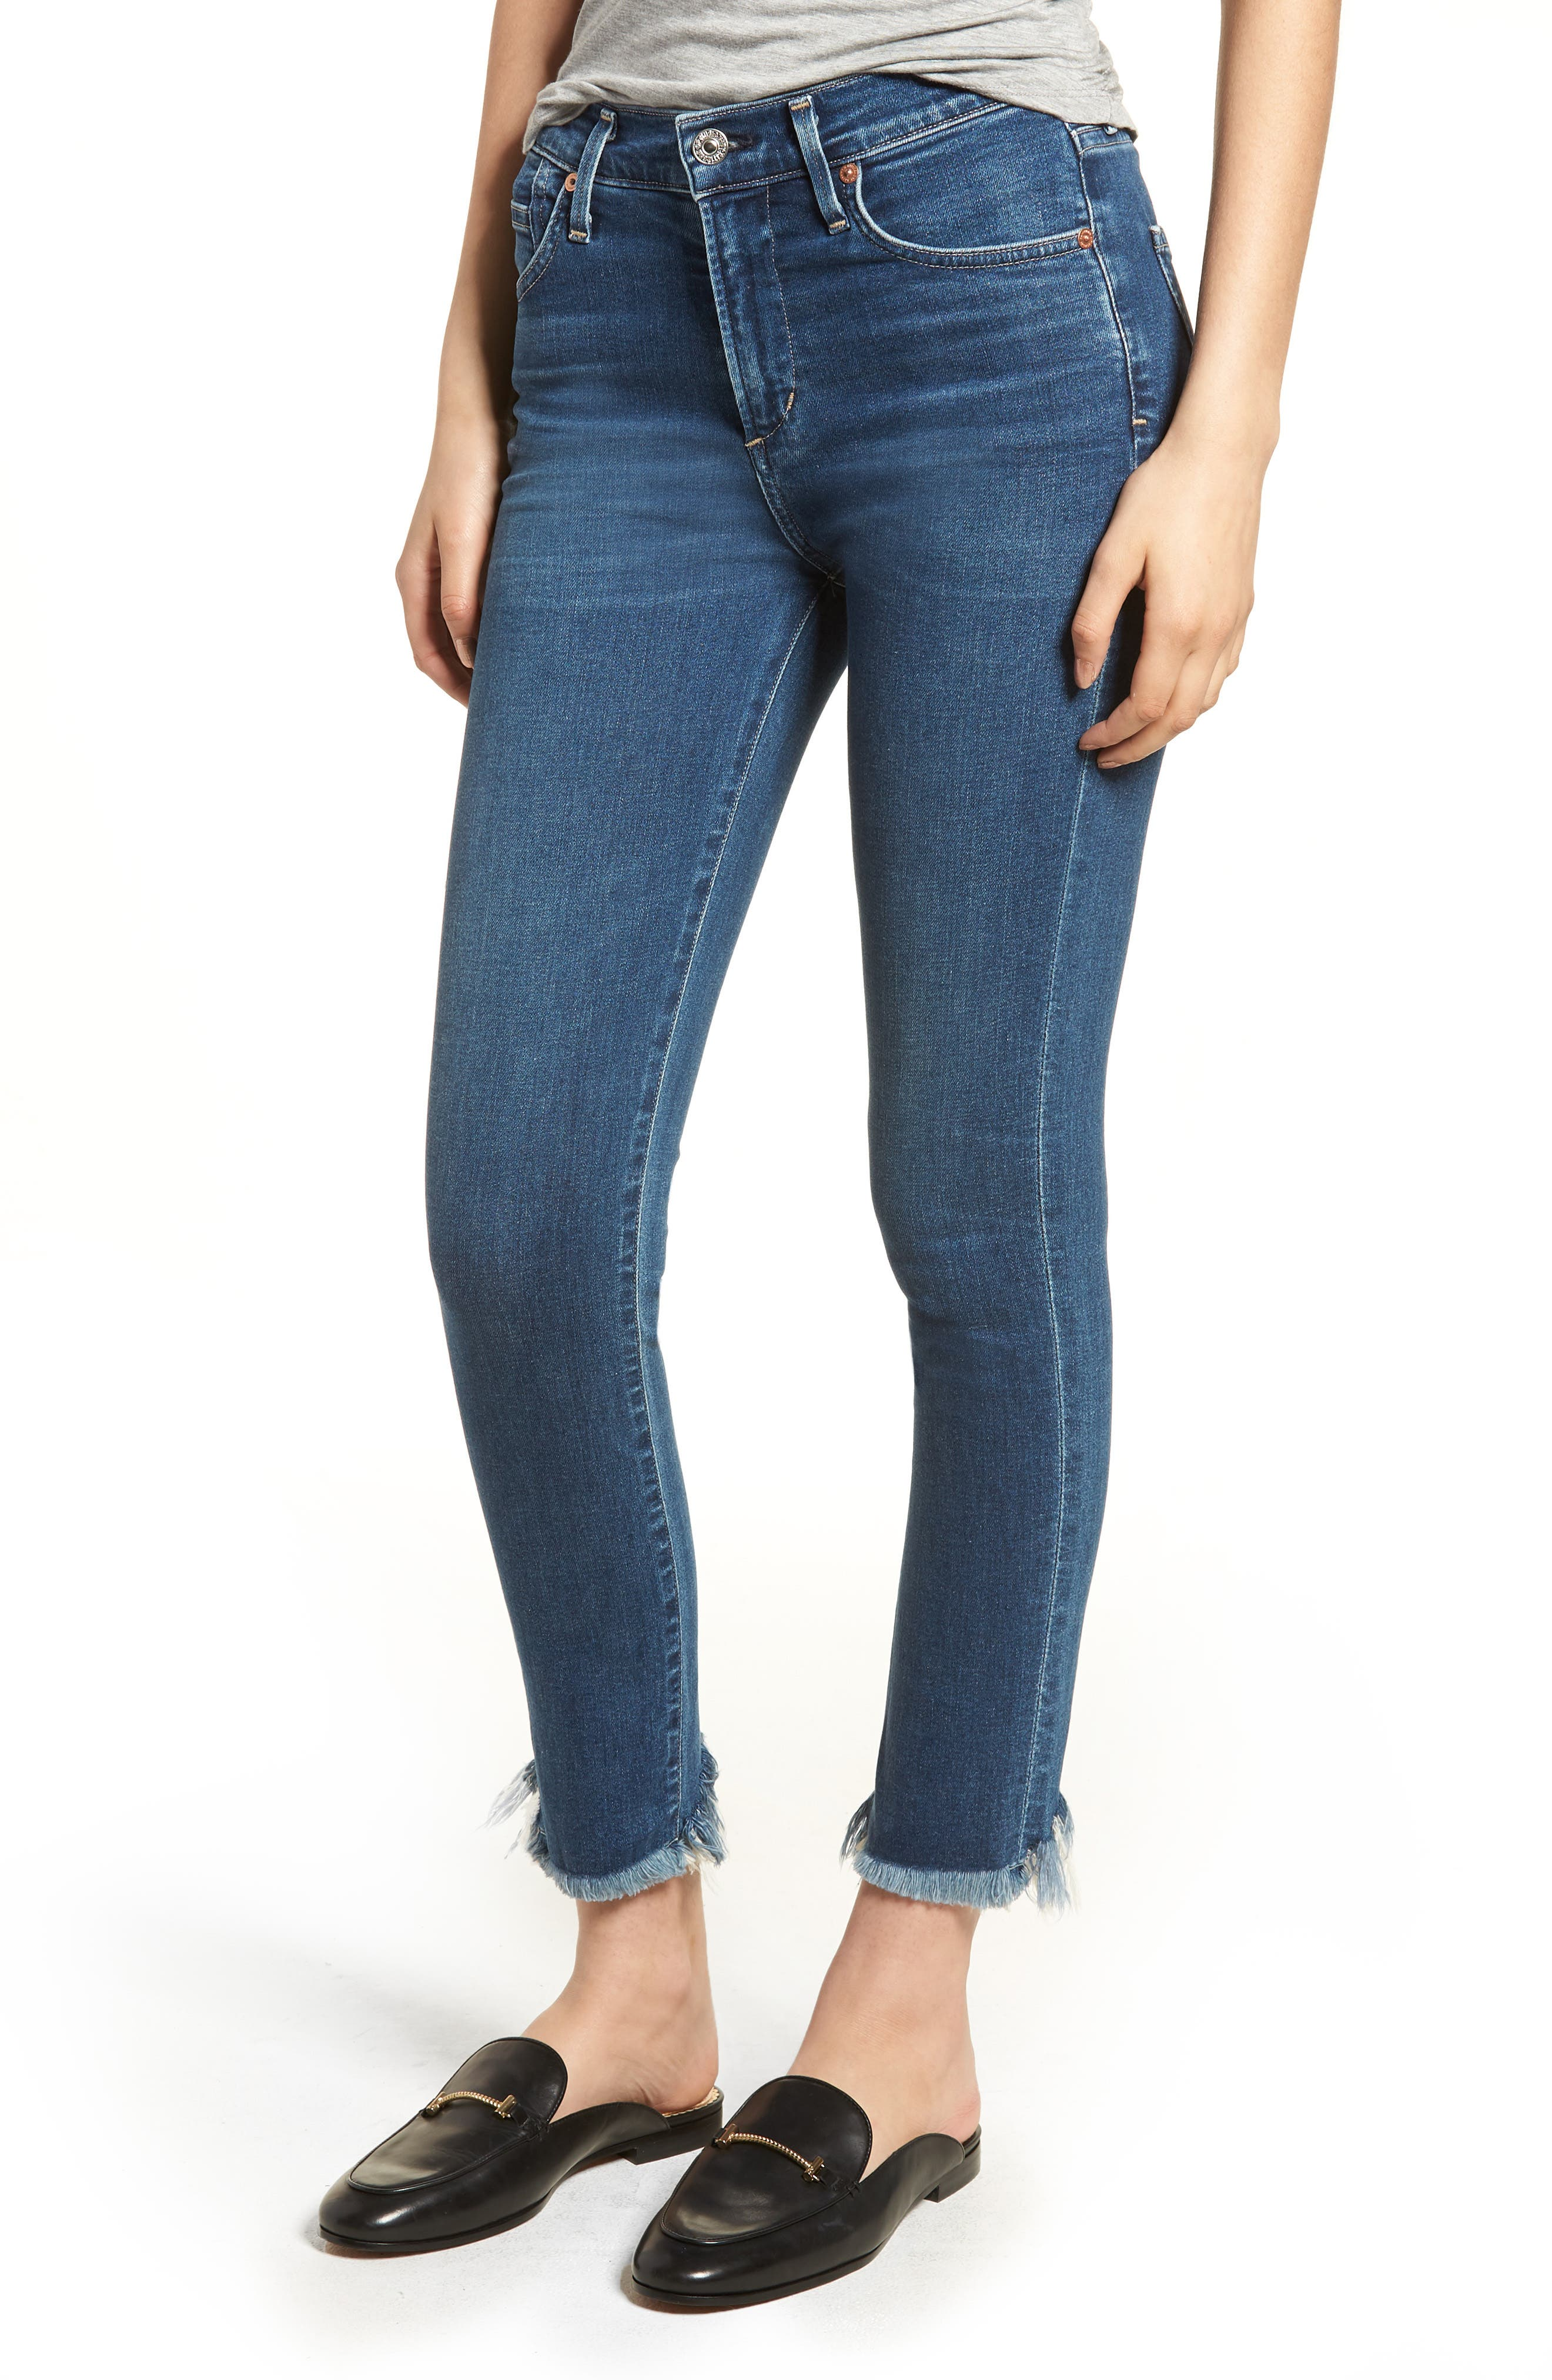 Citizens of Humanity Rocket High Waist Crop Skinny Jeans (Frequency)